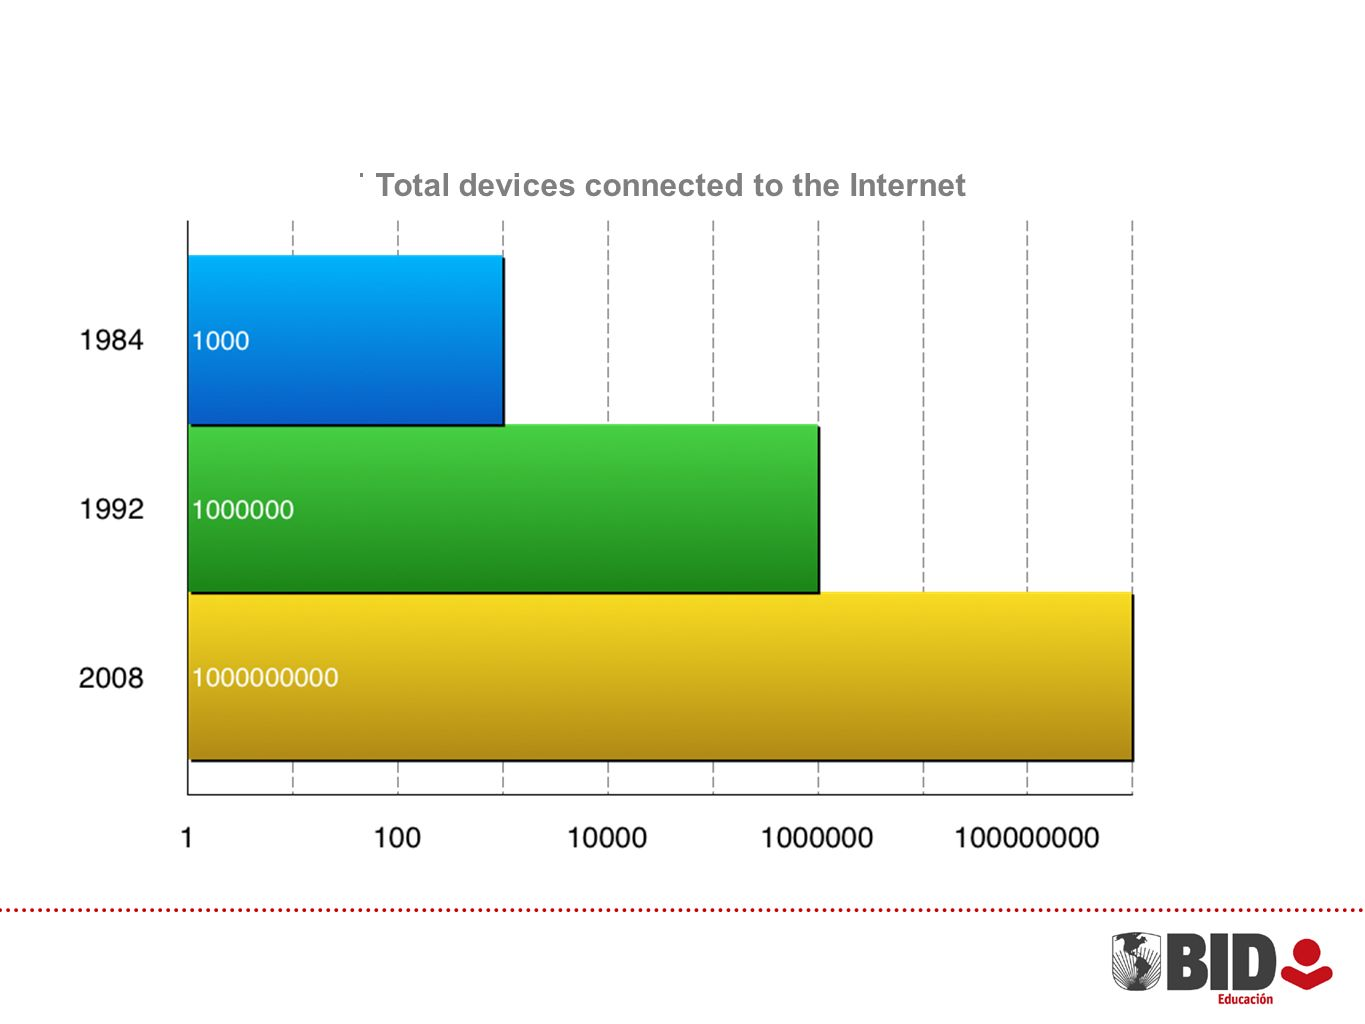 Total devices connected to the Internet